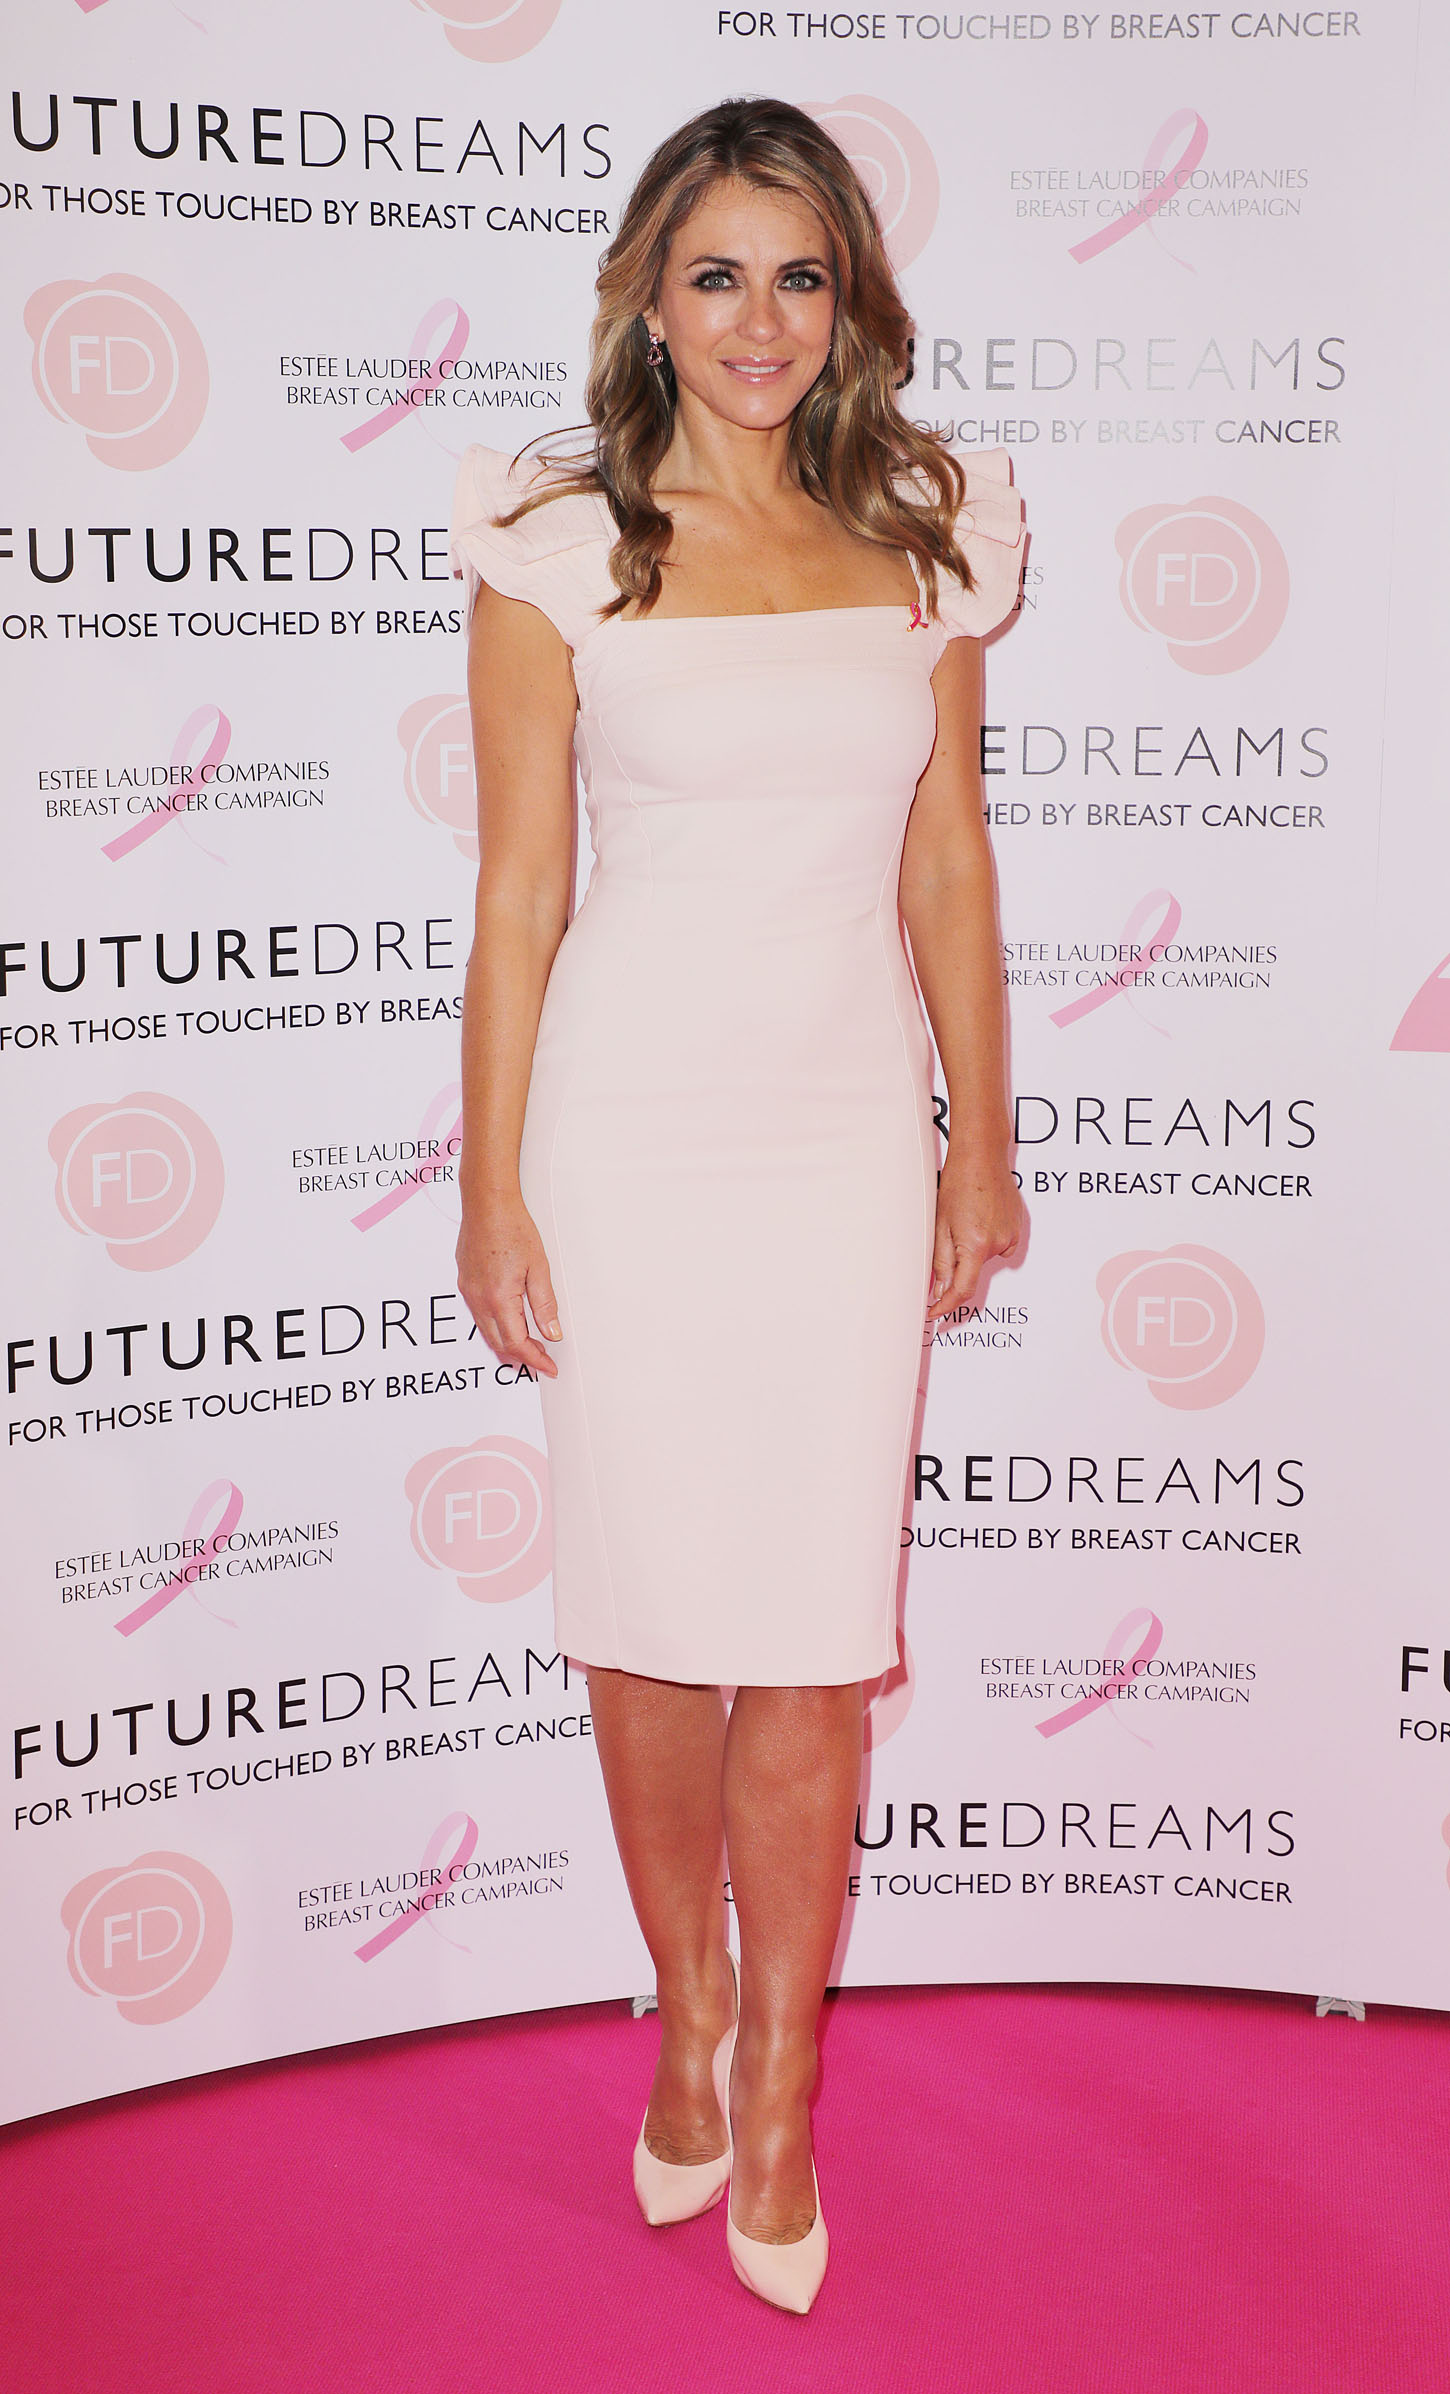 Future Dreams Fundraising lunch at the Savoy, London, UK <P> Pictured: Elizabeth Hurley <B>Ref: SPL1598180  091017  </B><BR/> Picture by: Elliot / Splash News<BR/> </P><P> <B>Splash News and Pictures</B><BR/> Los Angeles:310-821-2666<BR/> New York:212-619-2666<BR/> London:870-934-2666<BR/> <span id=